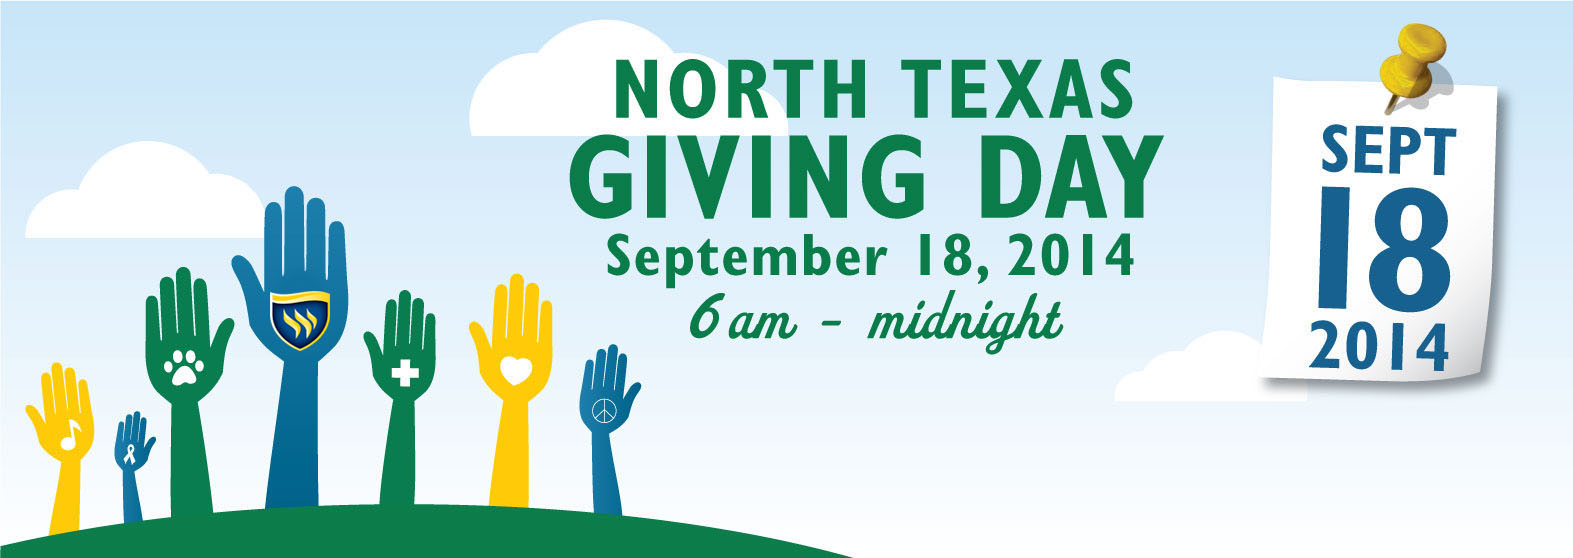 North Texas Giving Day image